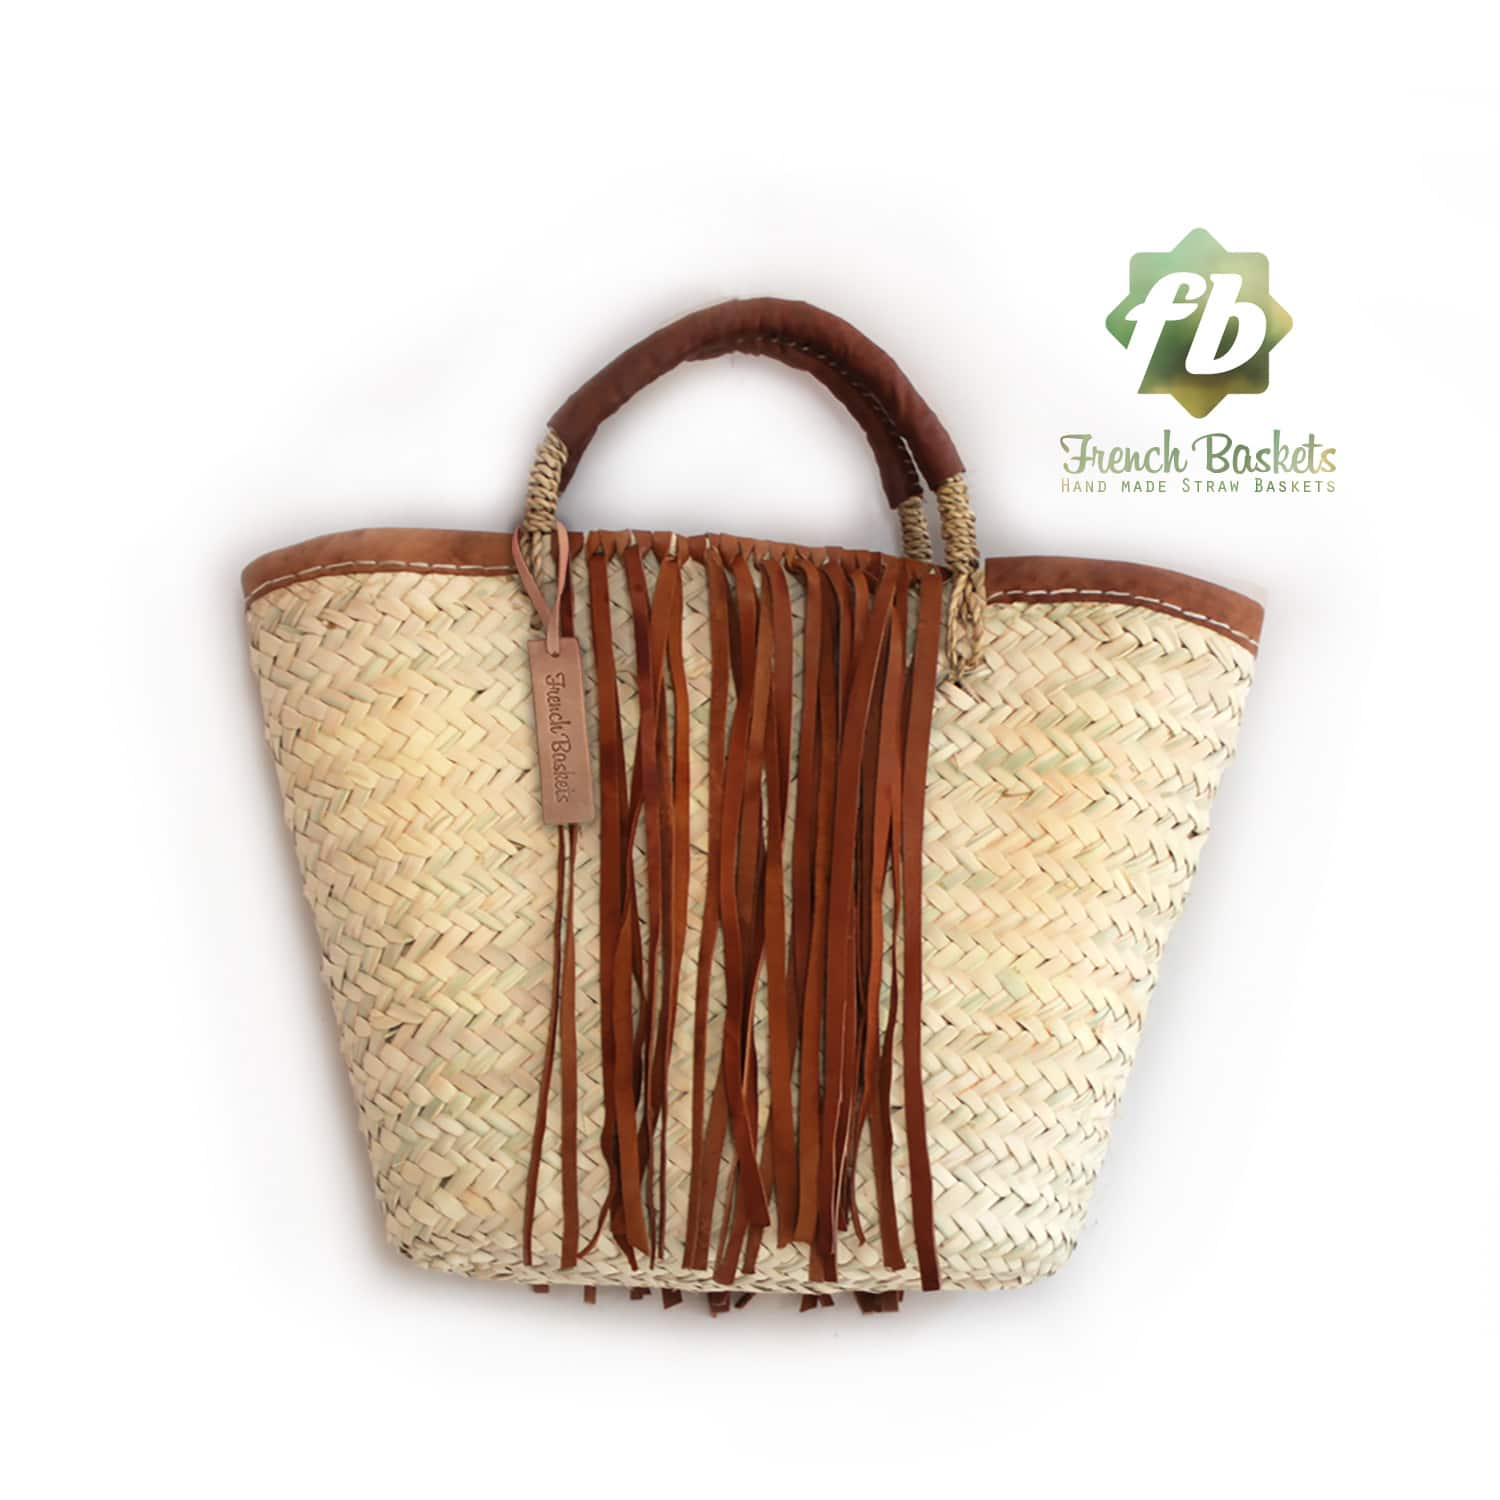 Small French Basket with Brown leather fringe